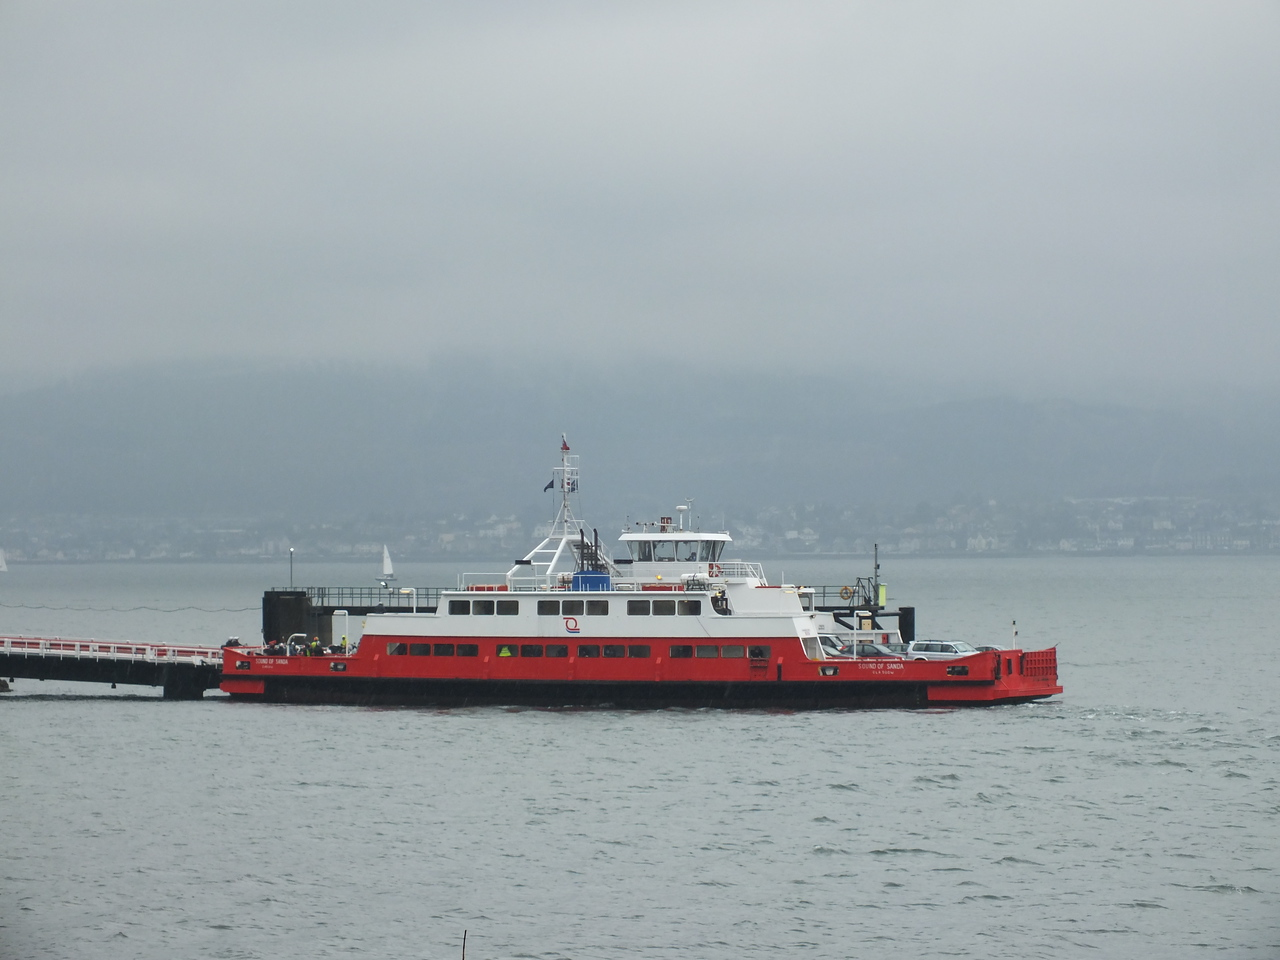 MV Sound of Sanda - Flickr